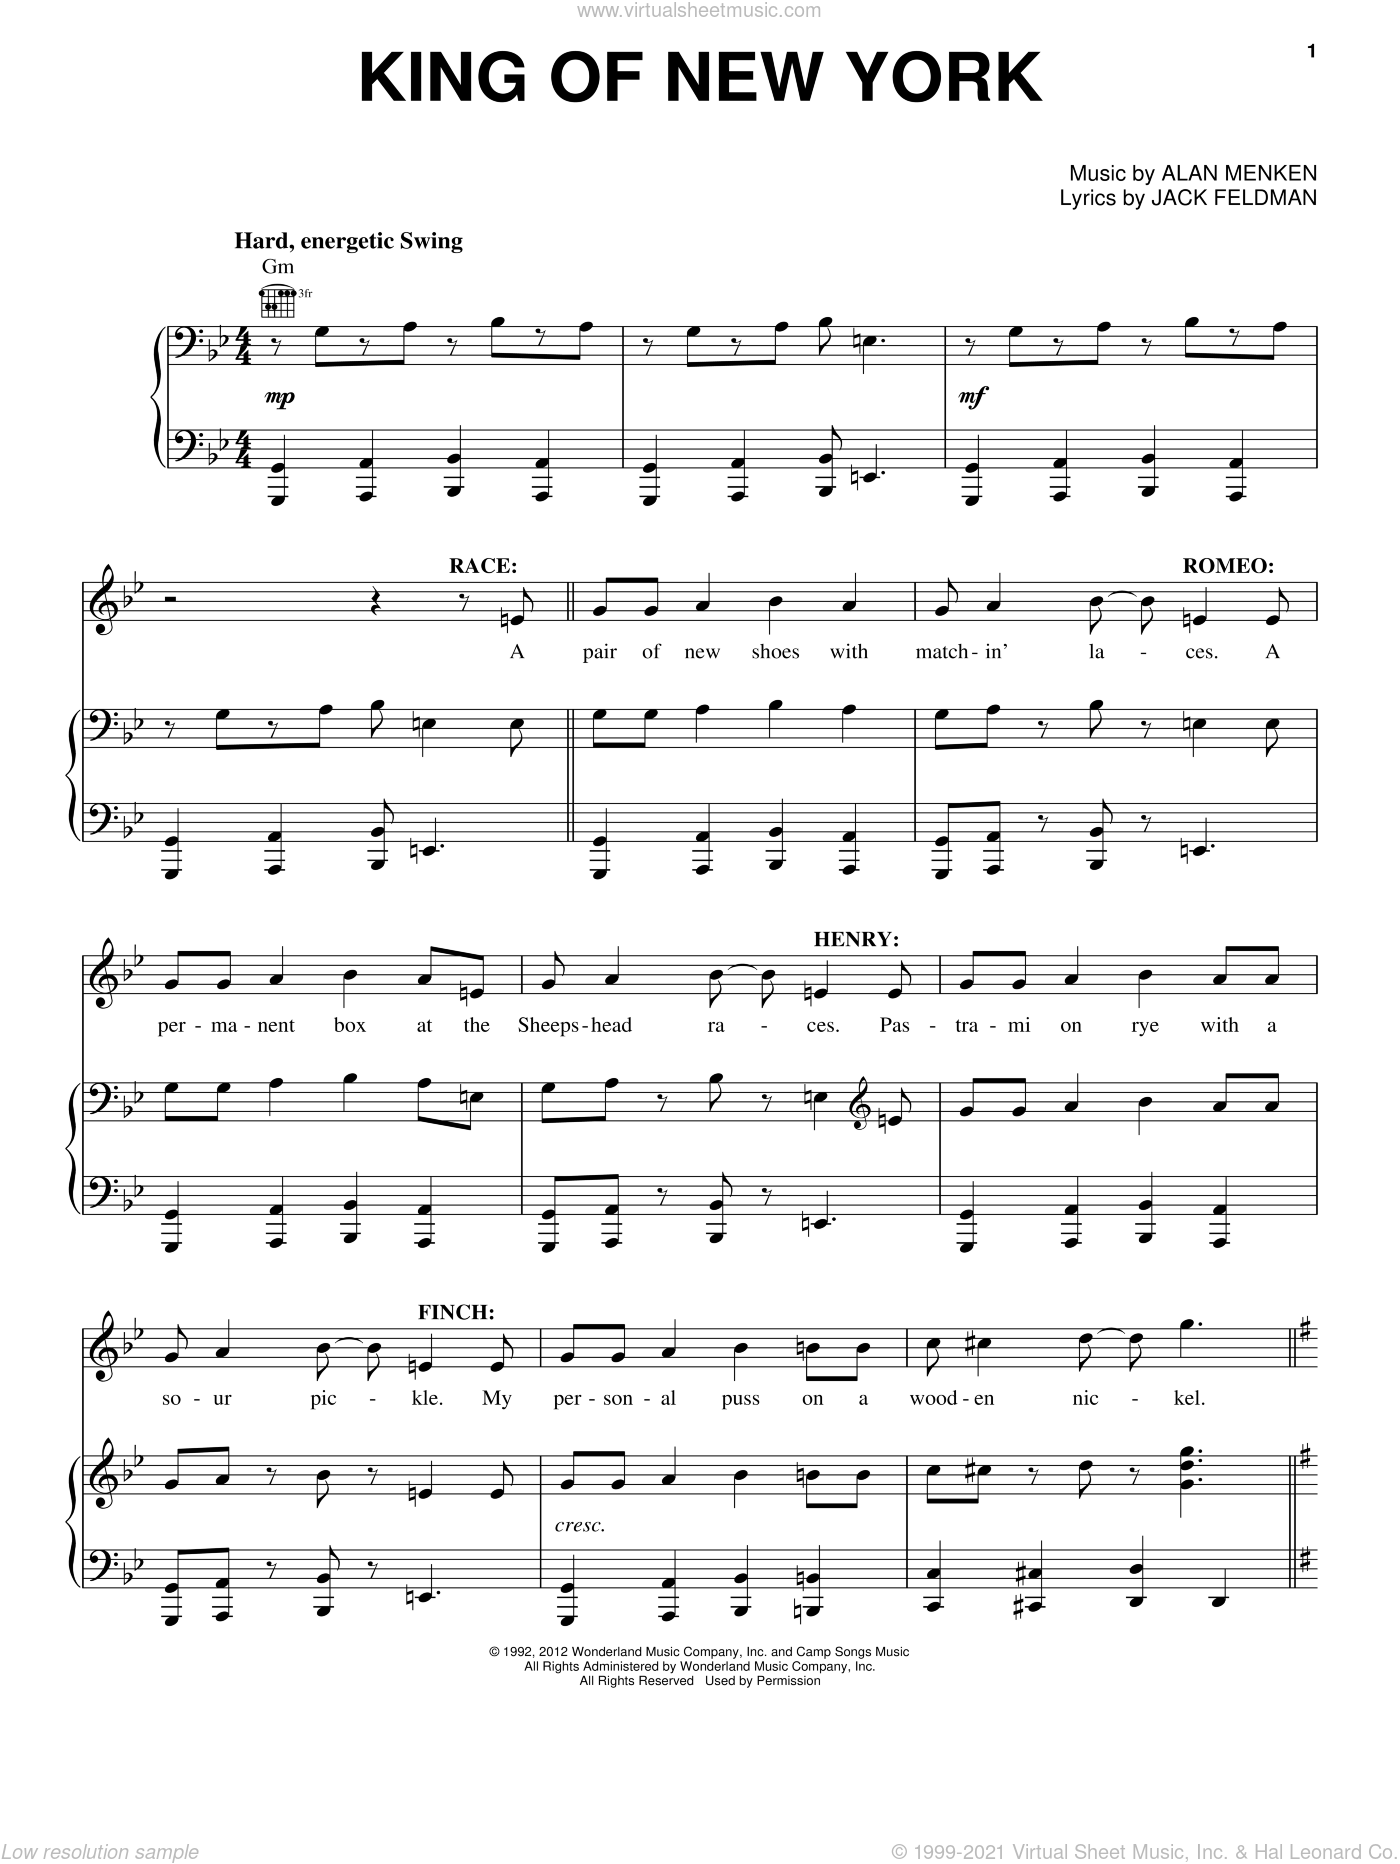 King Of New York sheet music for voice, piano or guitar by Alan Menken and Jack Feldman. Score Image Preview.